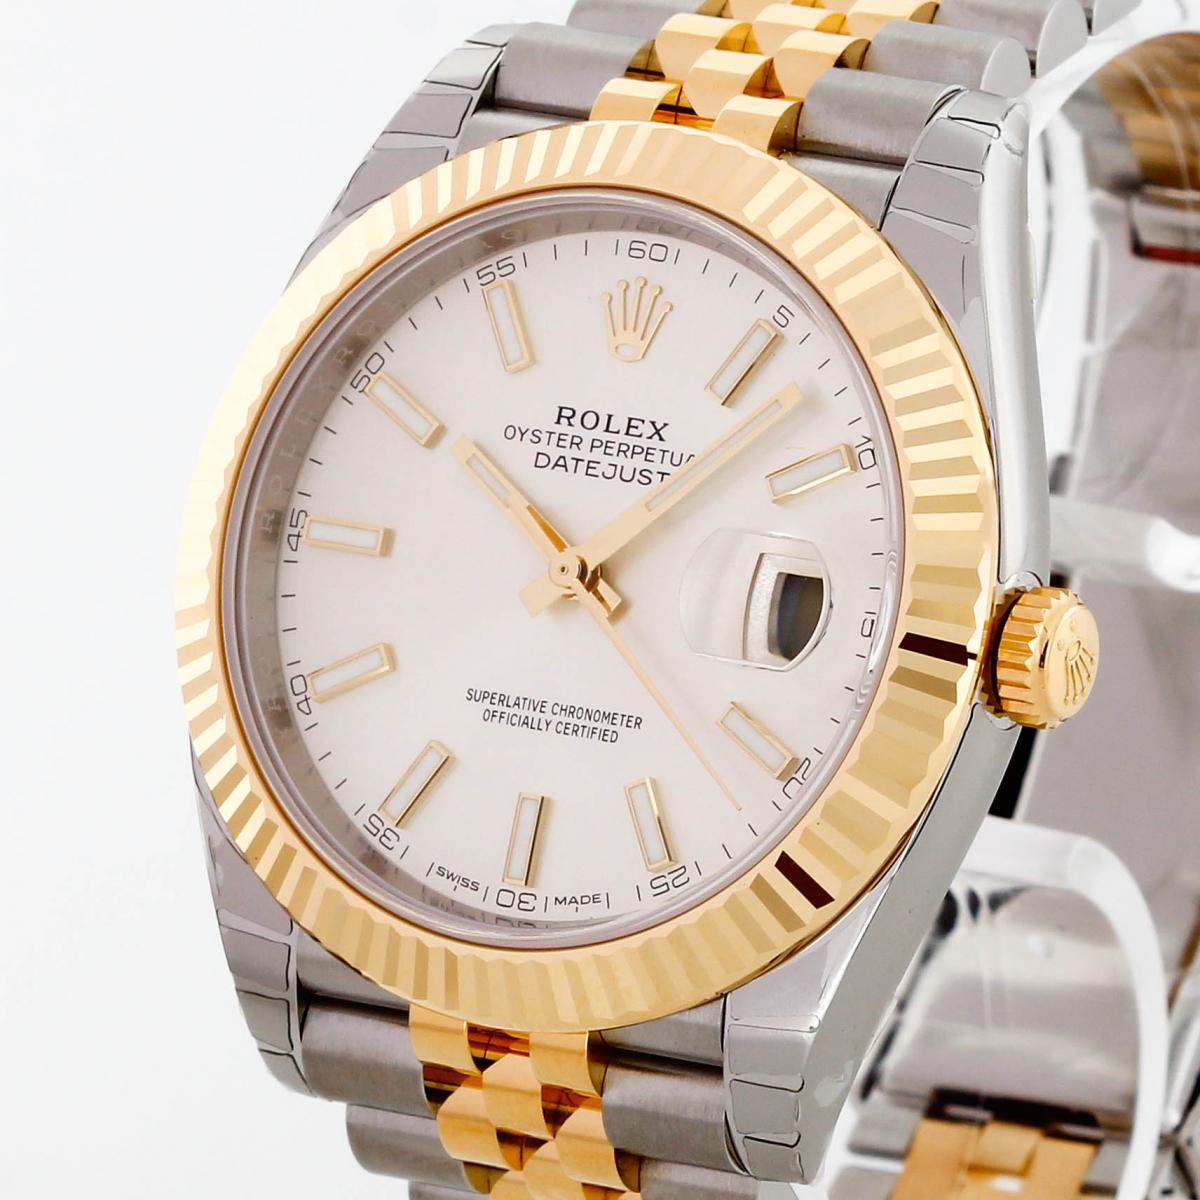 Rolex Oyster Perpetual Datejust 41 Edelstahl/18 K Gold 2018 Ref. 126333